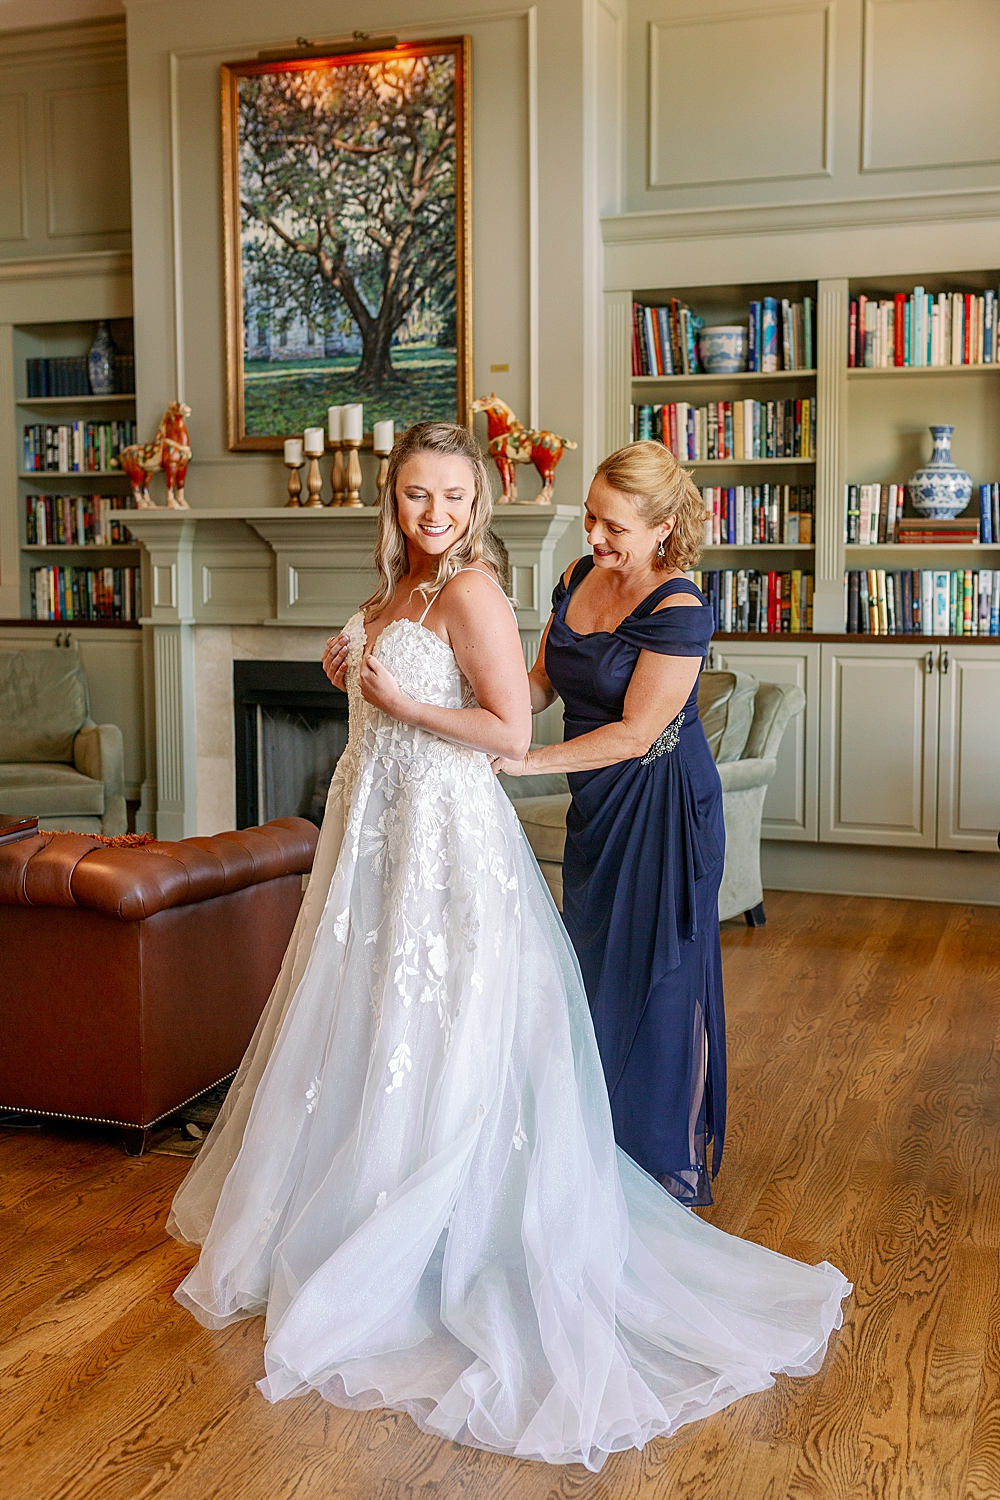 Bride being zipped up by mom on wedding day